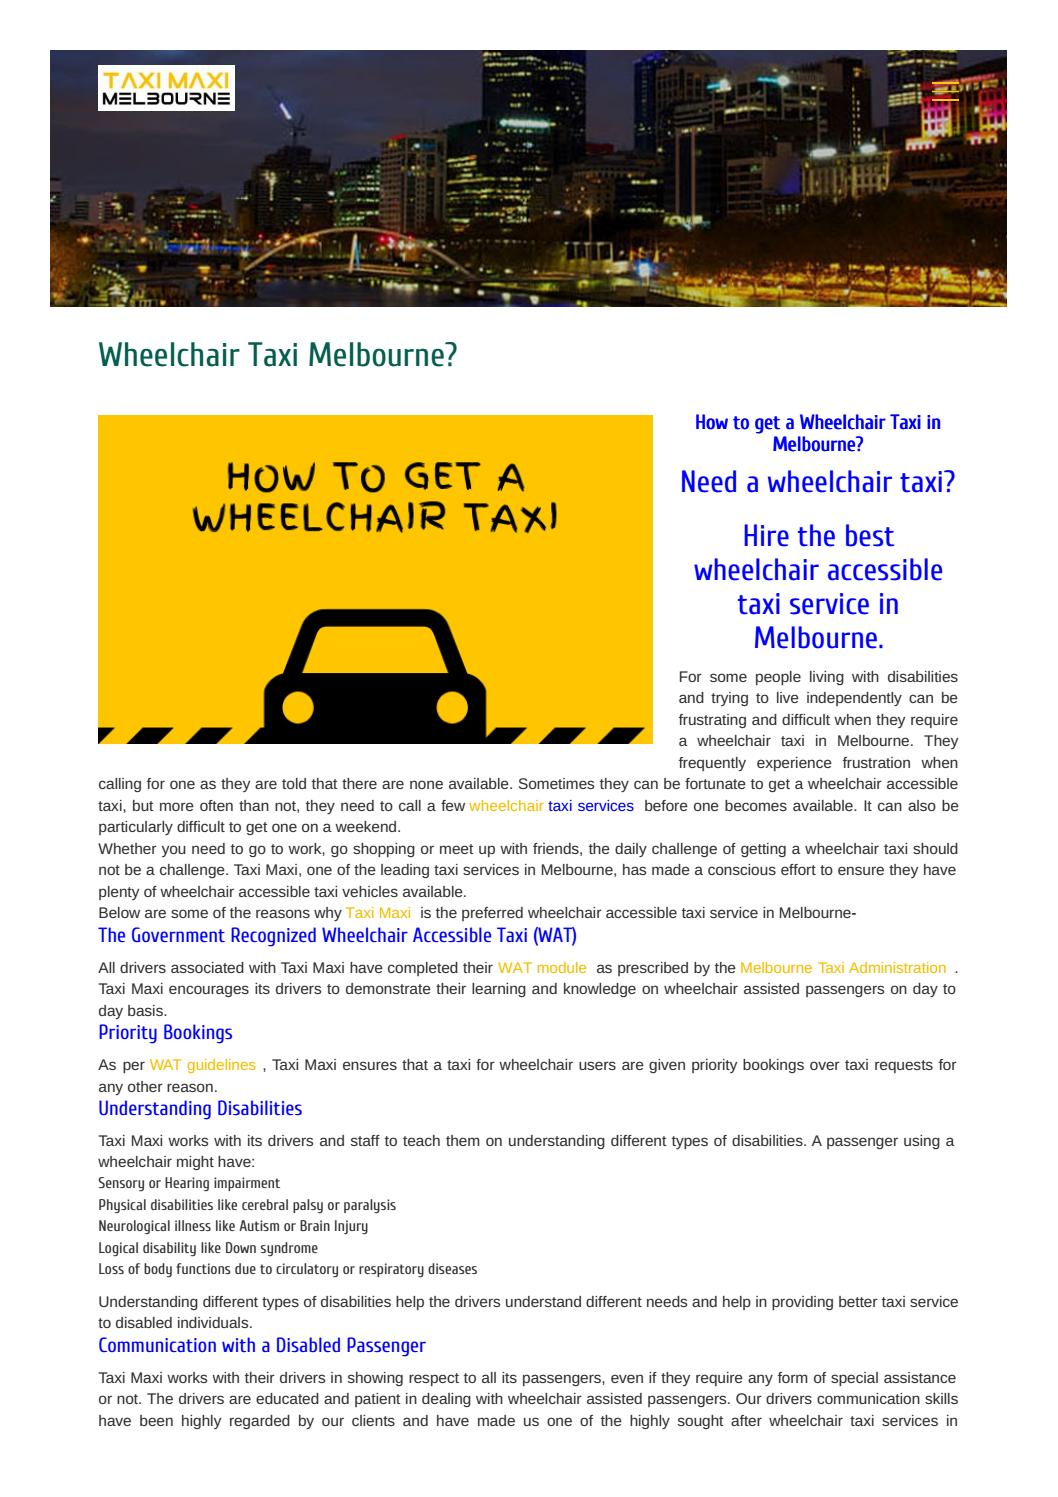 Wheelchair Taxi Melbourne? by Taxi Maxi Melbourne - issuu